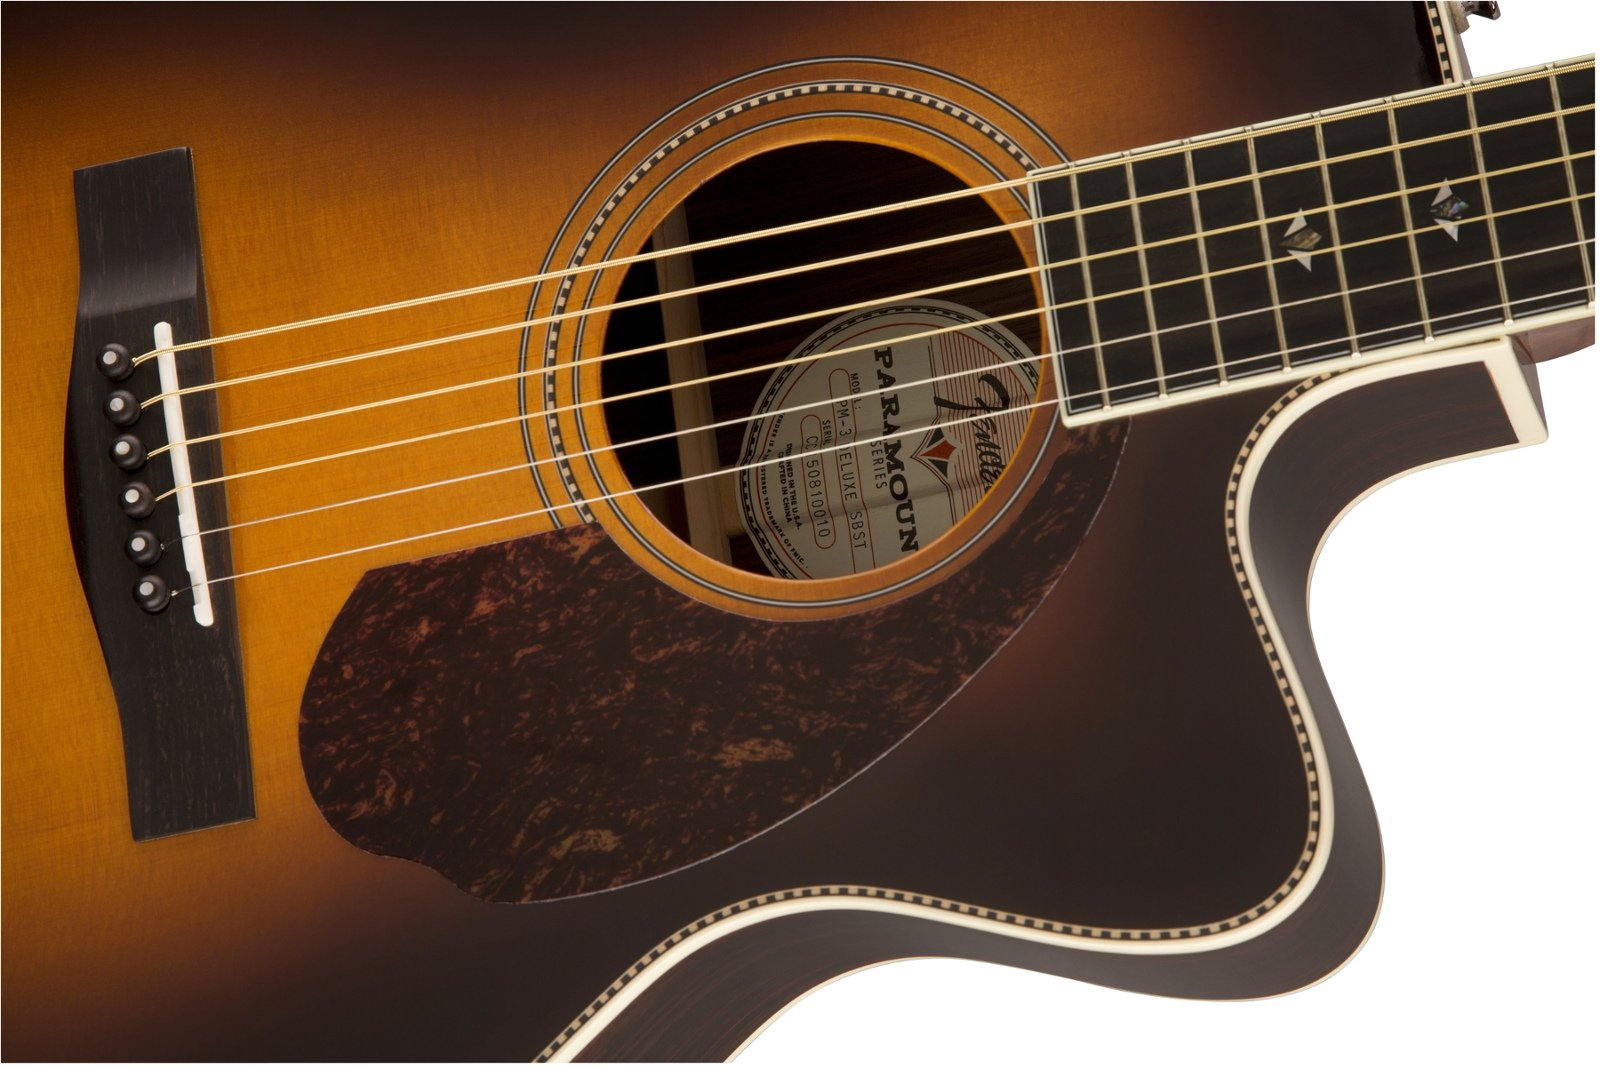 Paramount Series Acoustic-Electric Guitar with Premium Hardshell Case